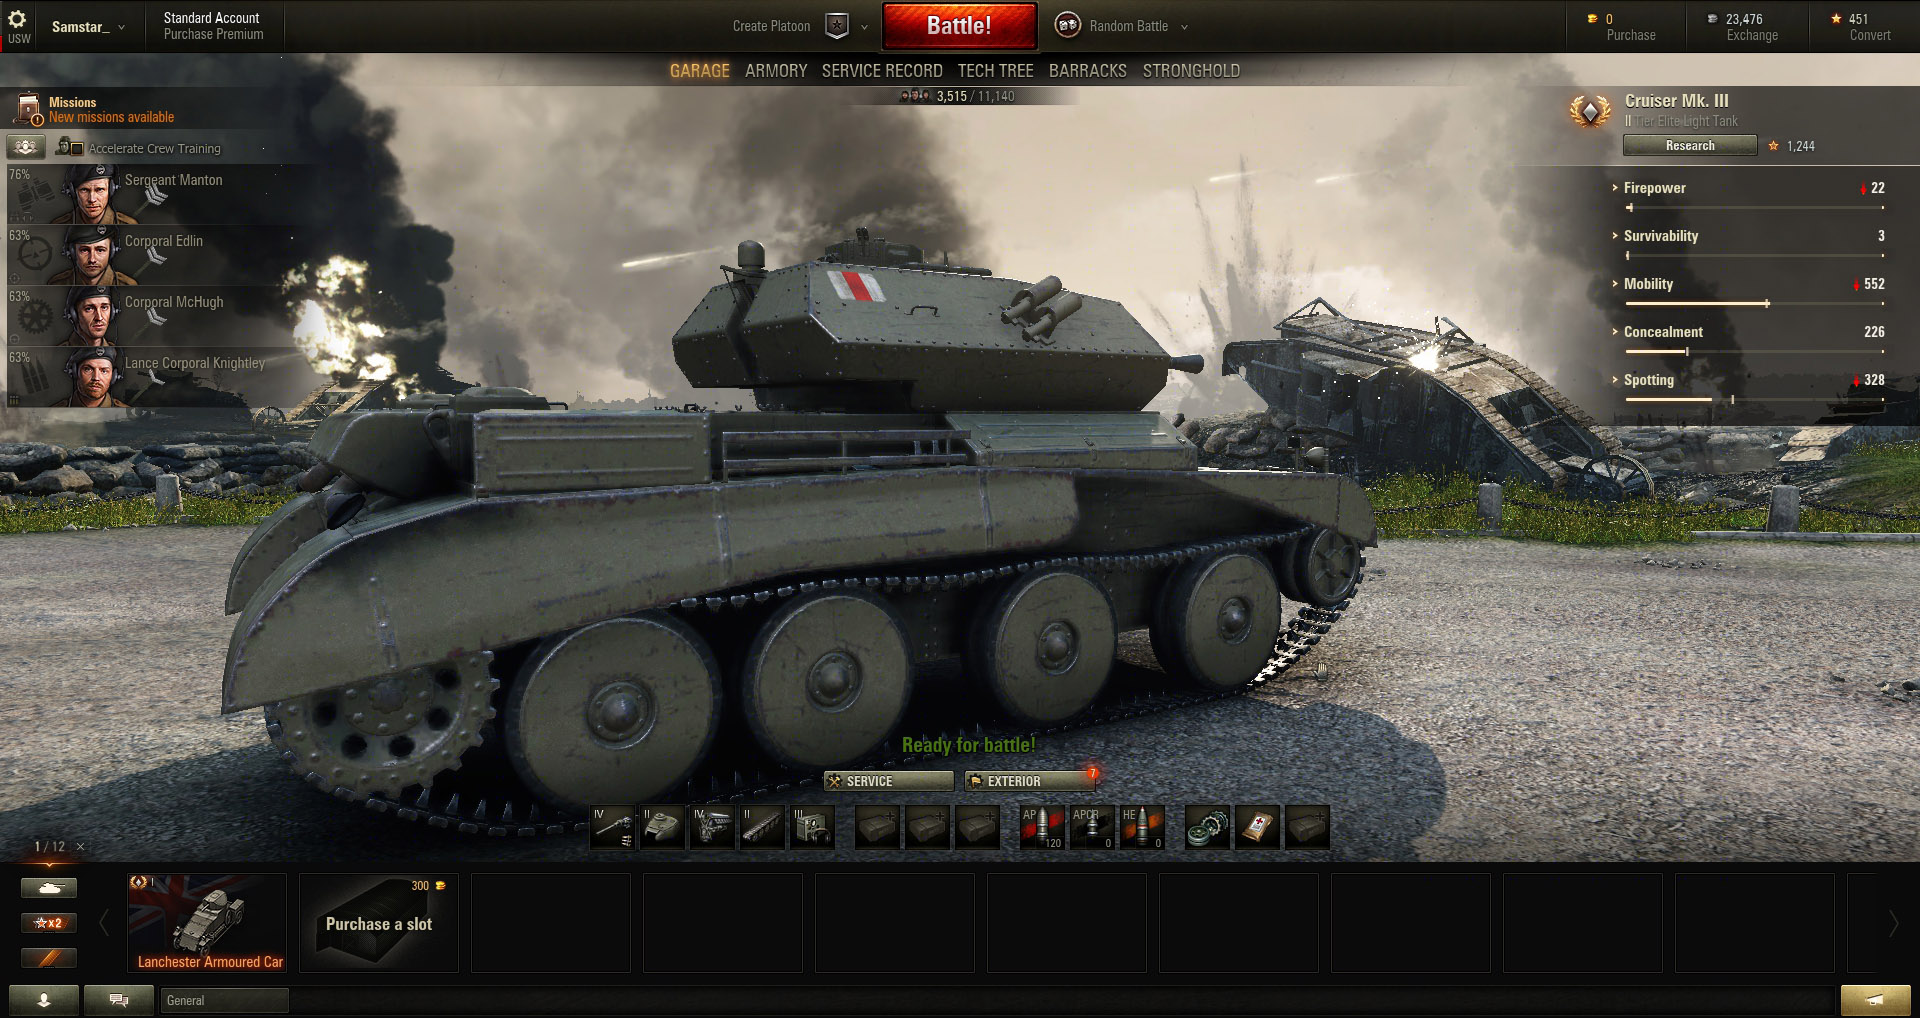 Cruiser Mk 3: Suspension